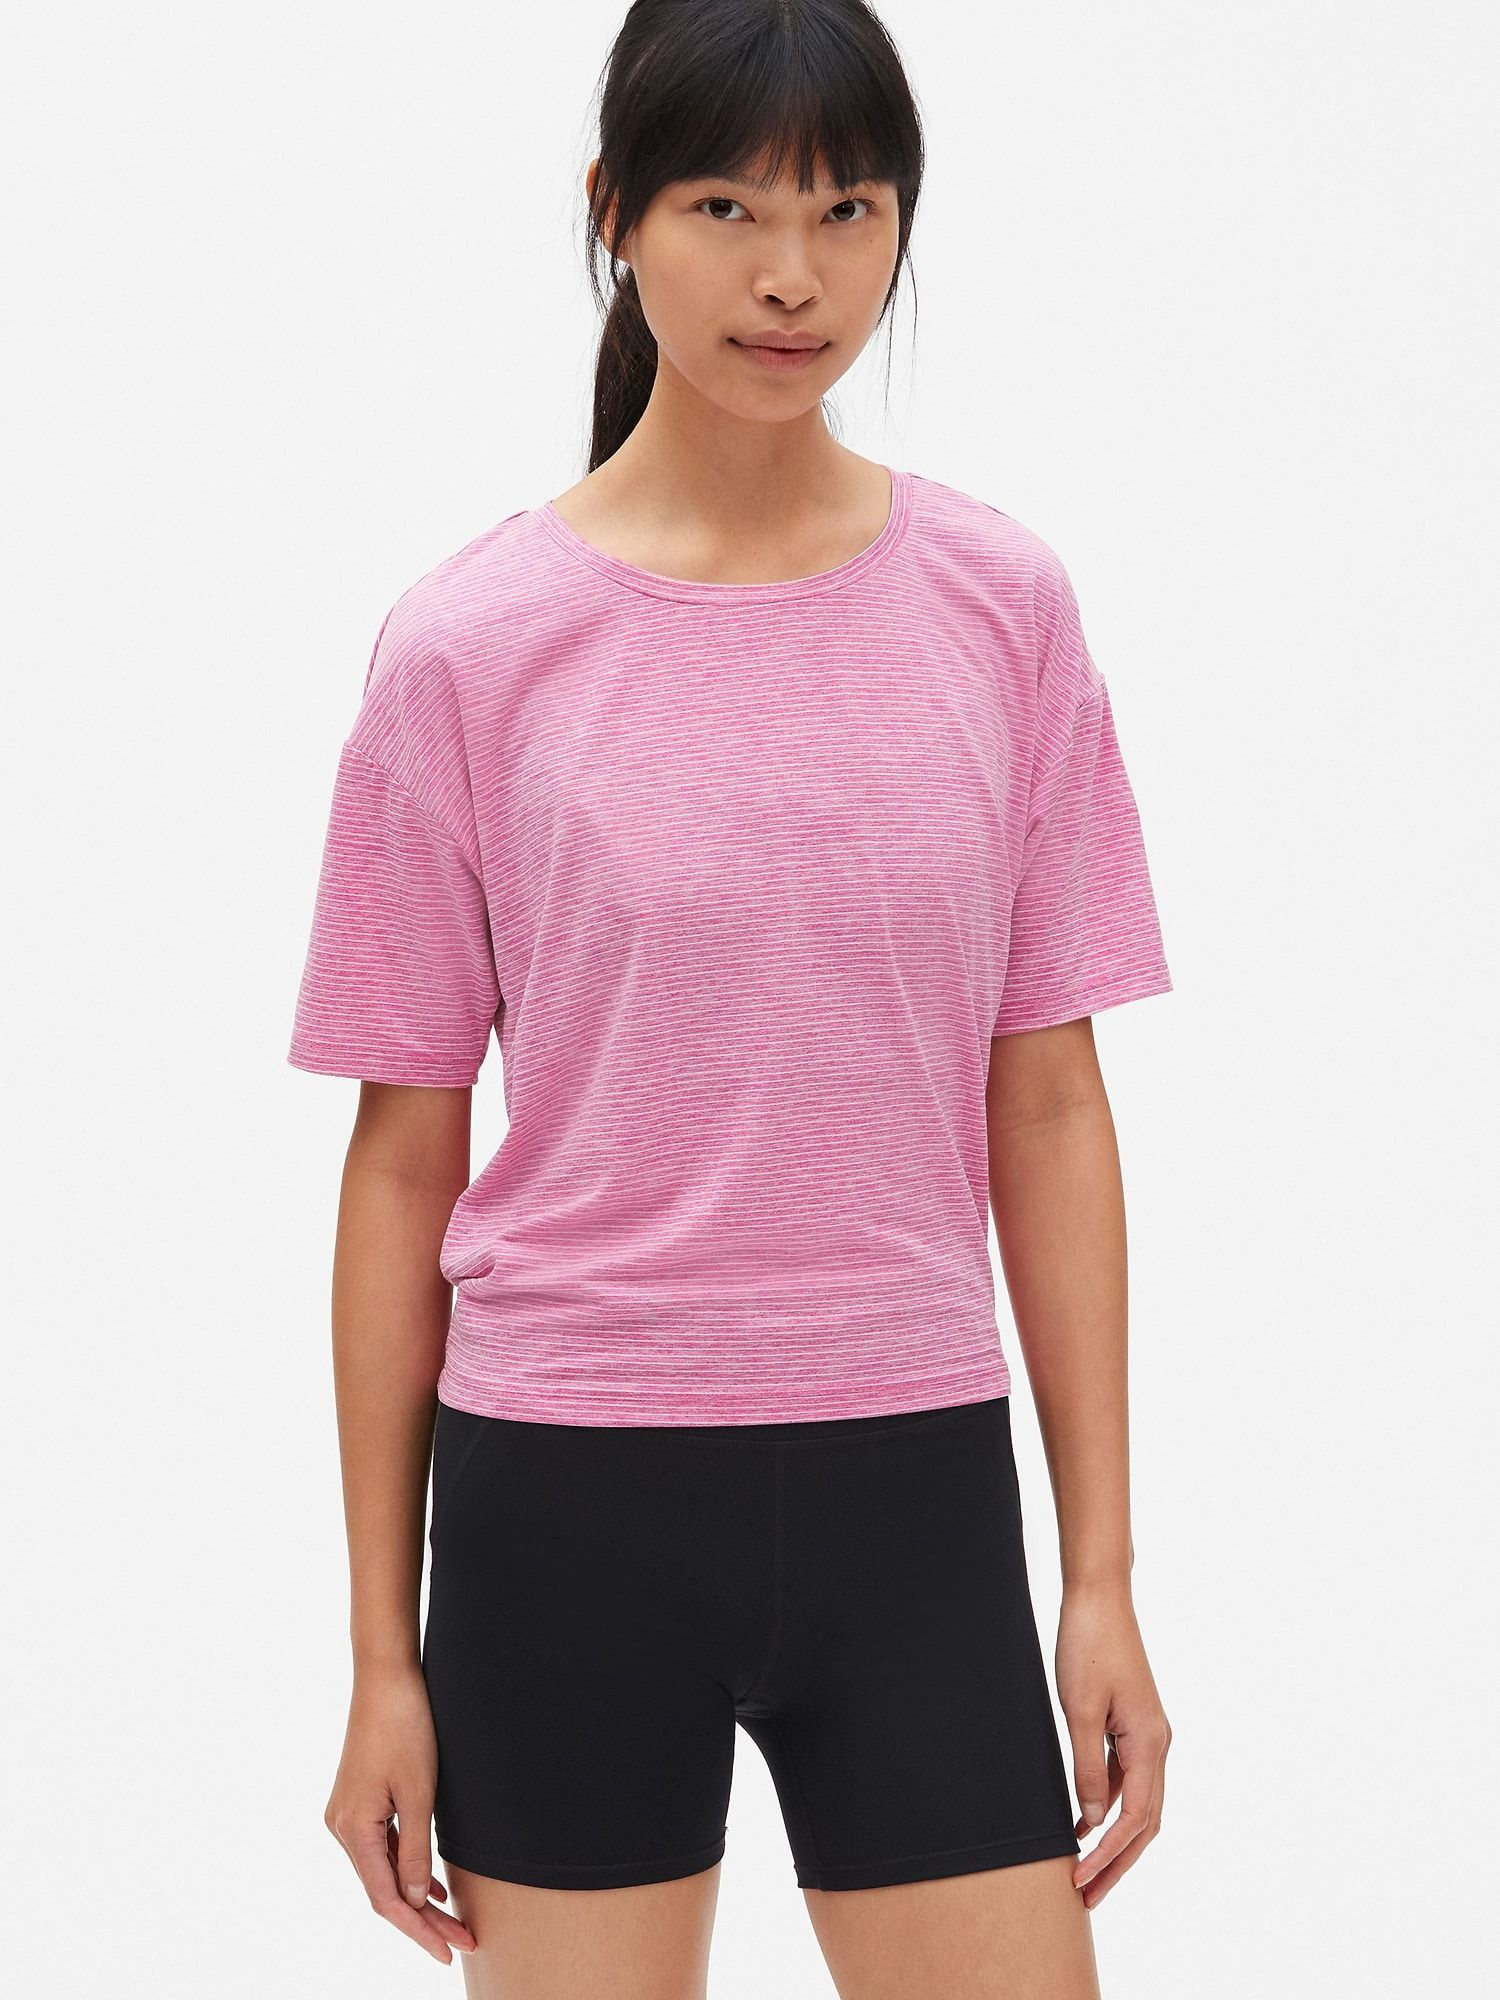 0dd161b822f1 The Best Stores To Buy Cheap Workout Clothes For Women